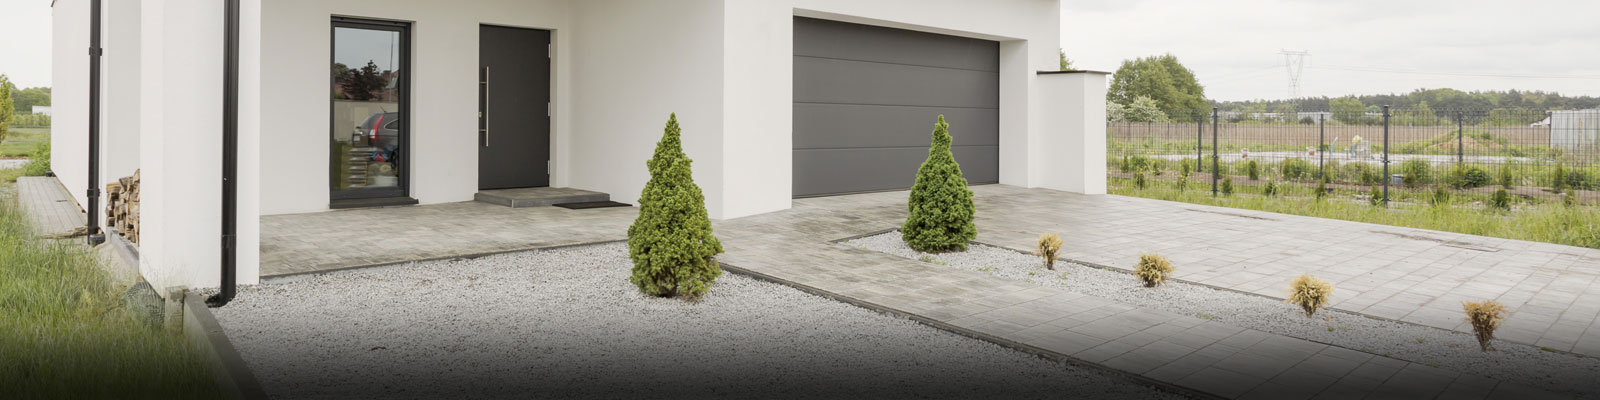 Gravel and Grass Landscaping Systems